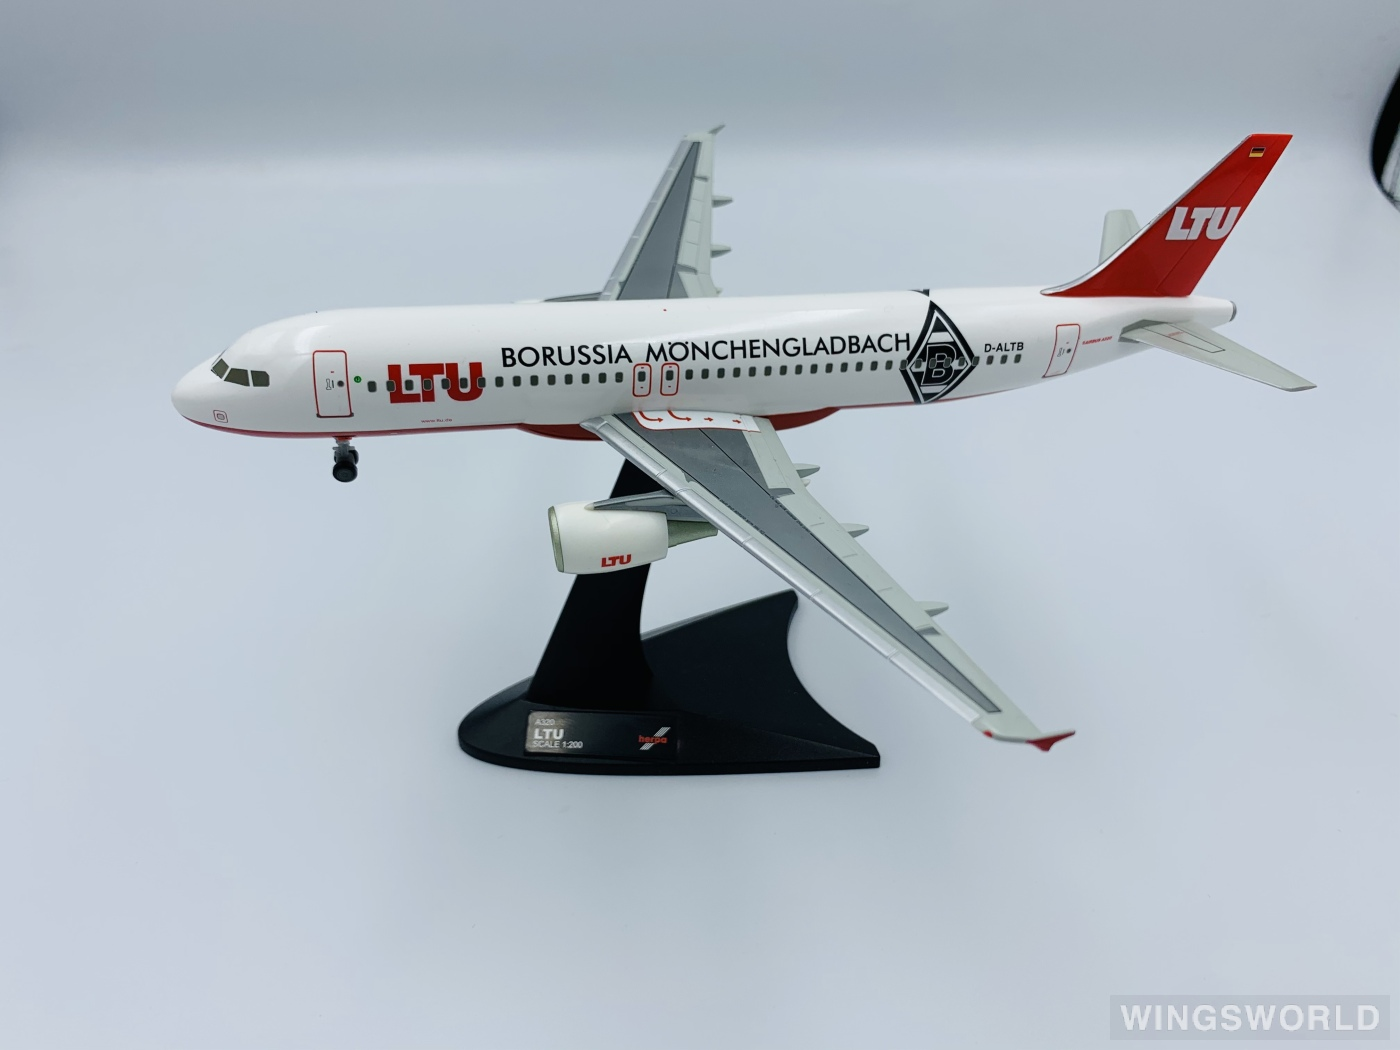 Herpa 1:200 550611 LTU International Airbus A320 D-ALTB